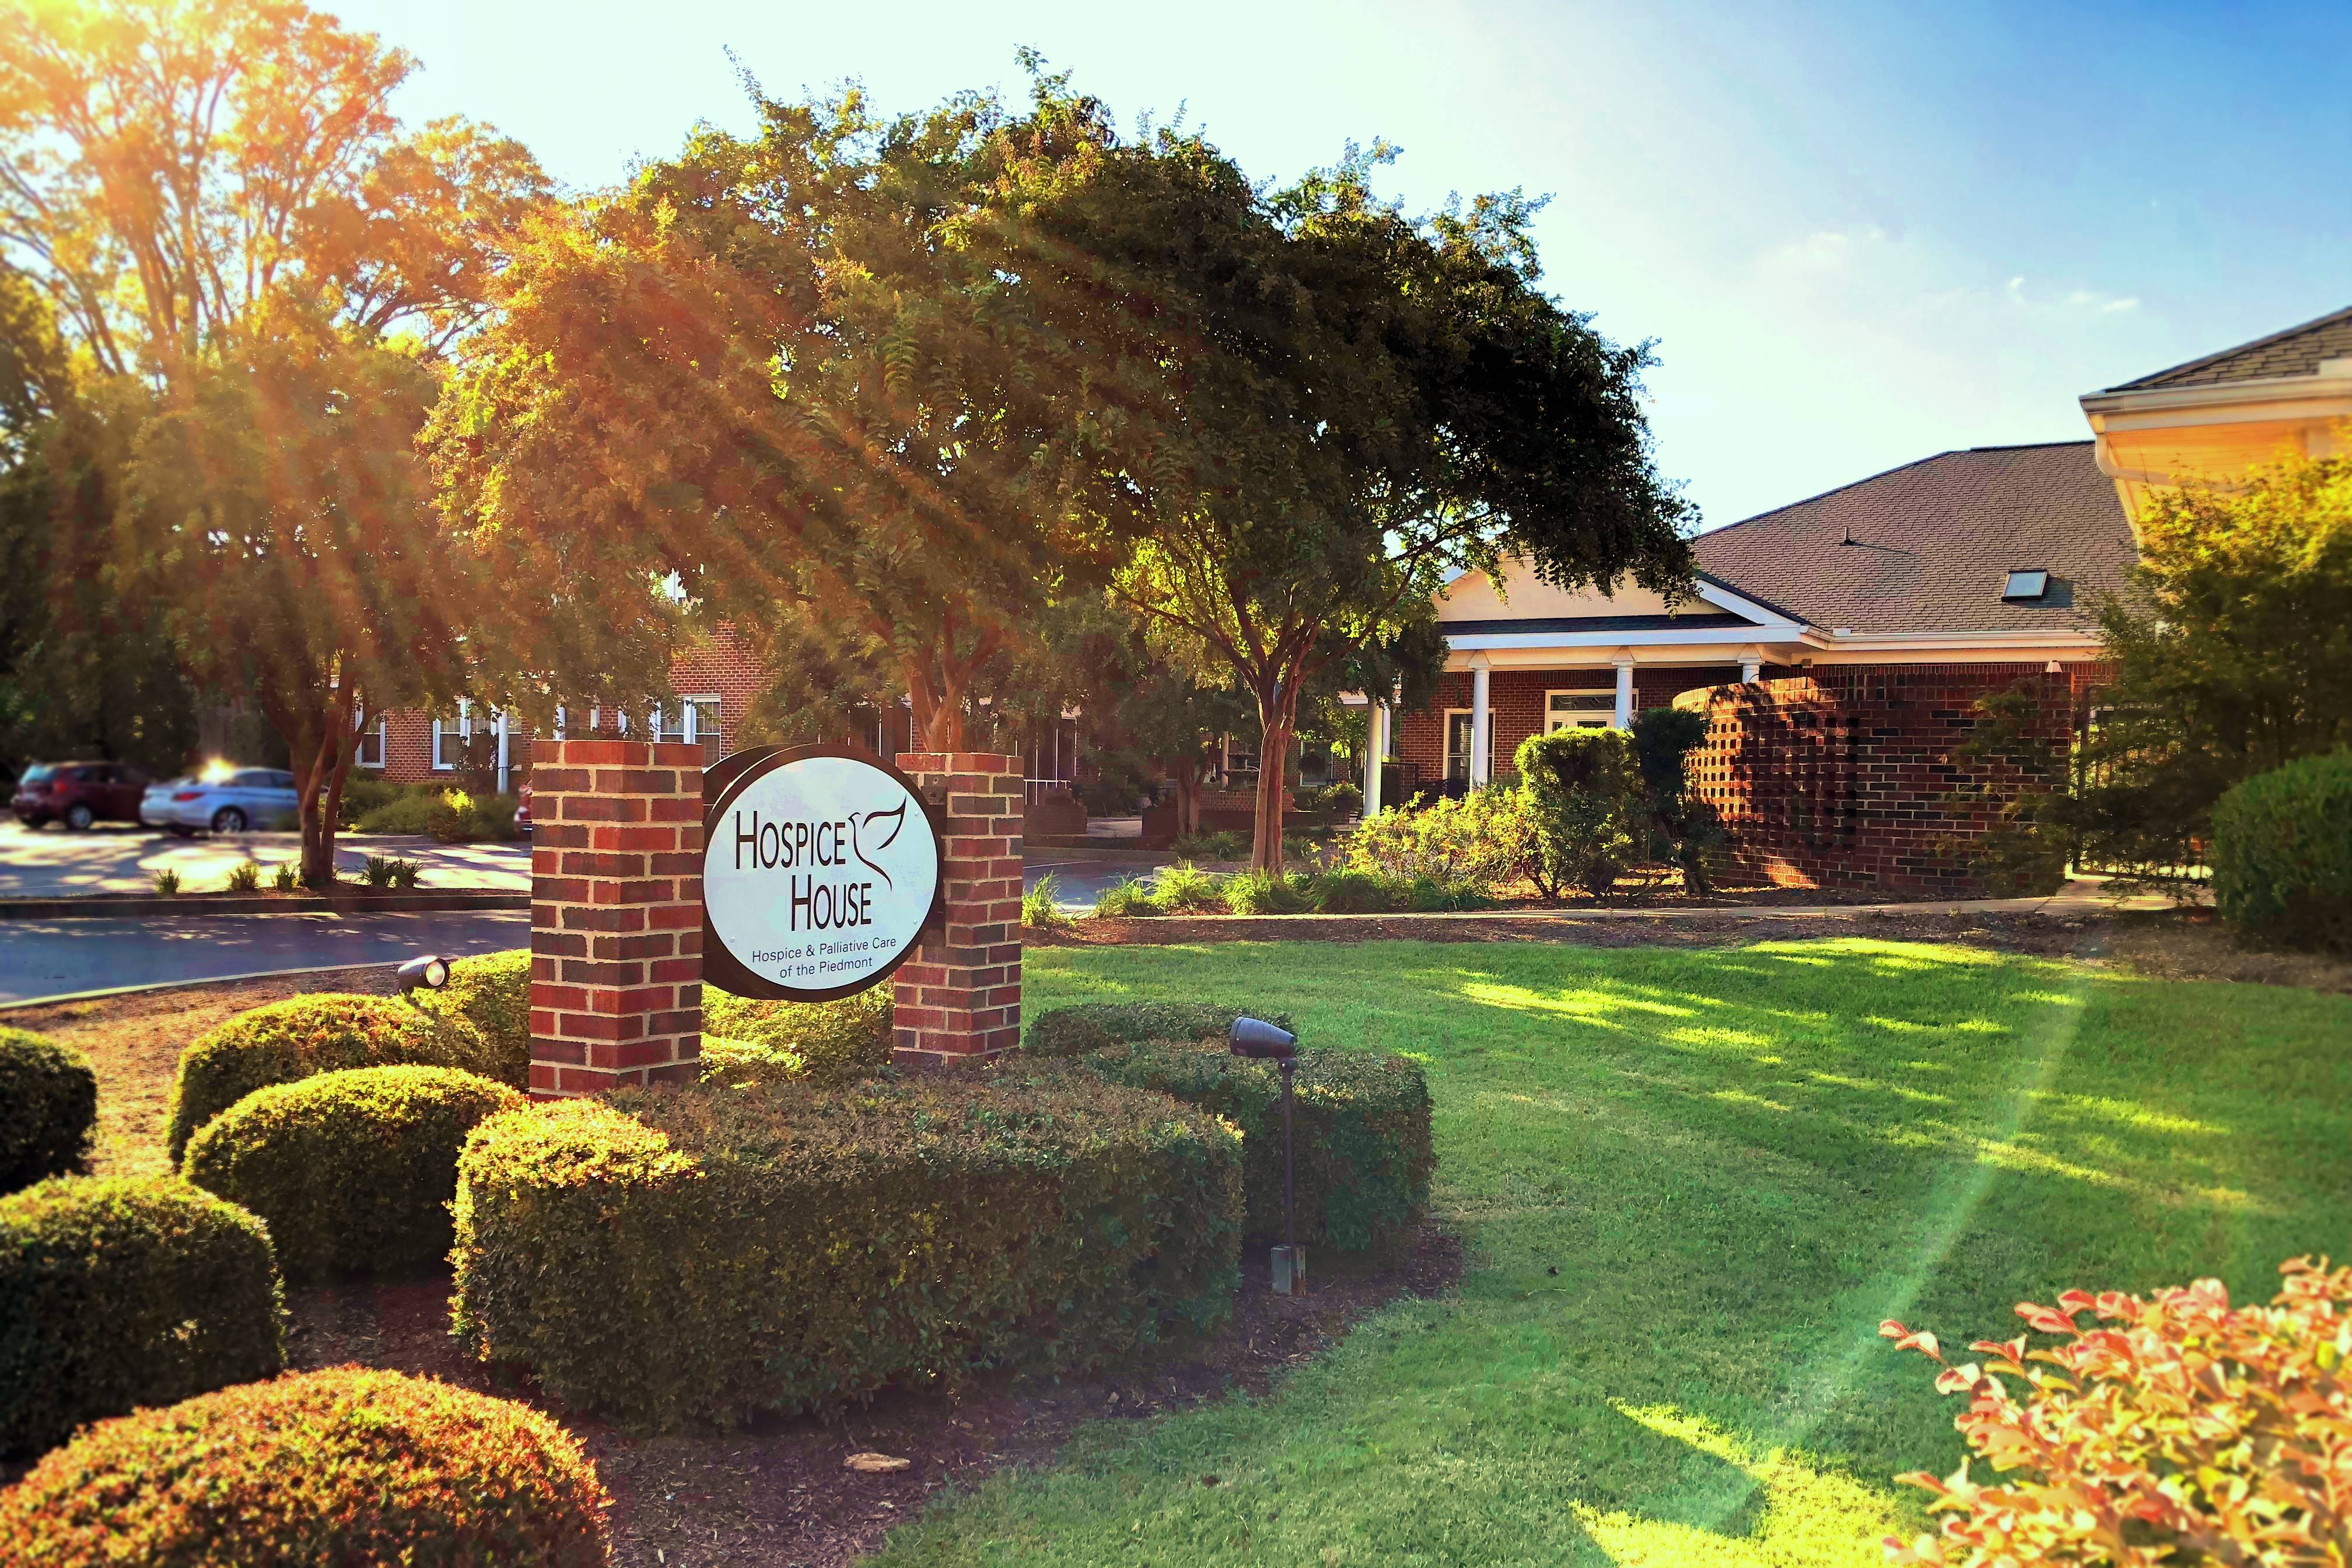 Hospice House – Hospice and Palliative Care of the Piedmont